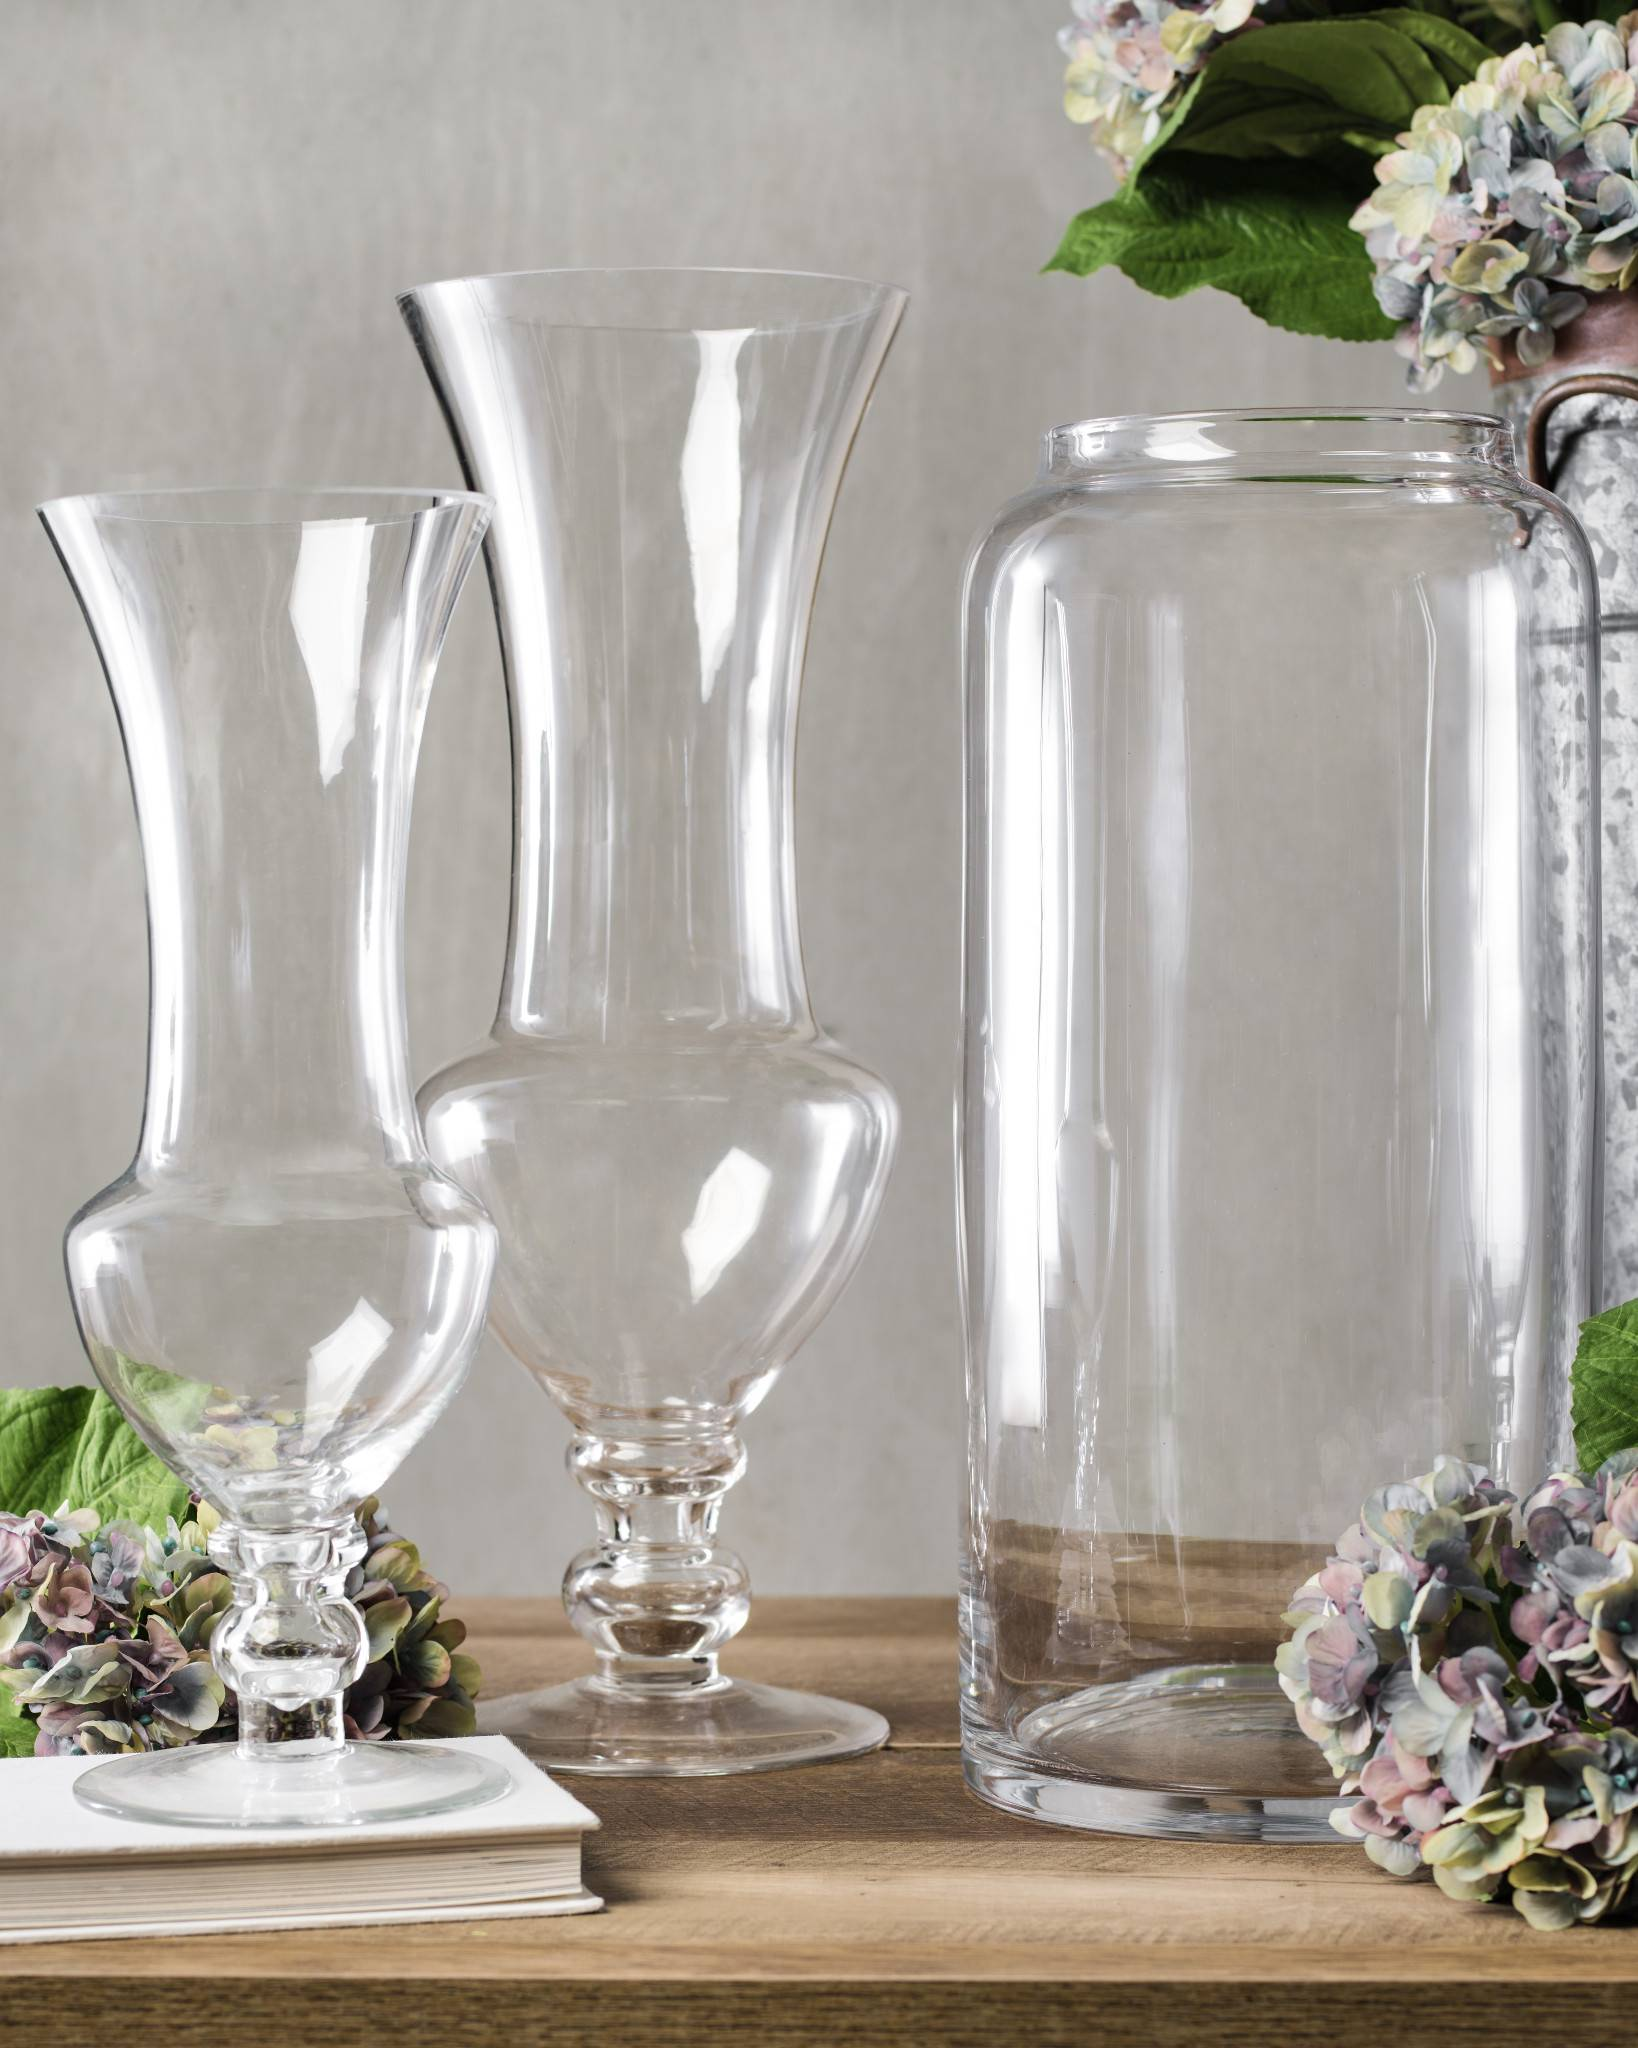 Hand blown glass floral vases balsam hill glass vase reviewsmspy